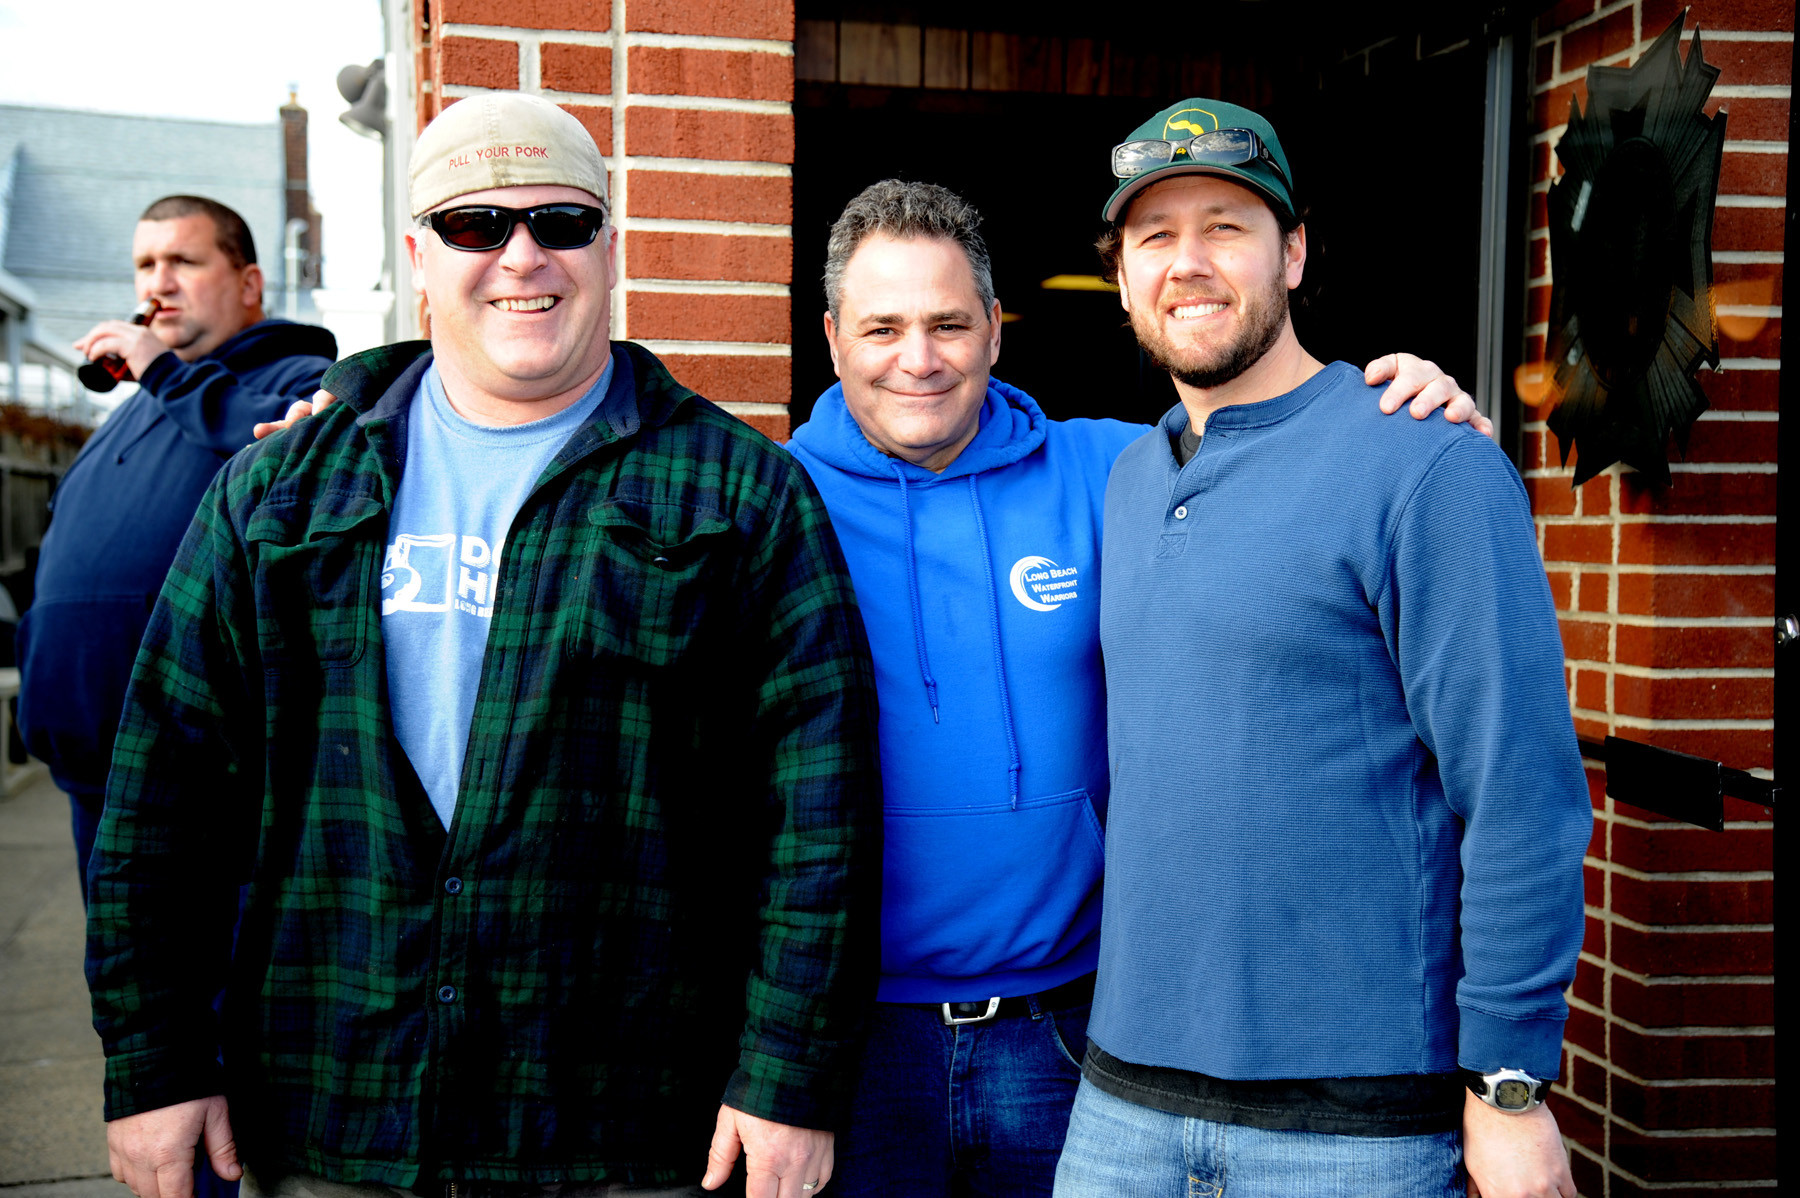 Event organizers Sean Sullivan, left, and Billy Kupferman, far right, were joined by local radio host Howie Appel, and said that they were thrilled with the fundraiser's turnout.